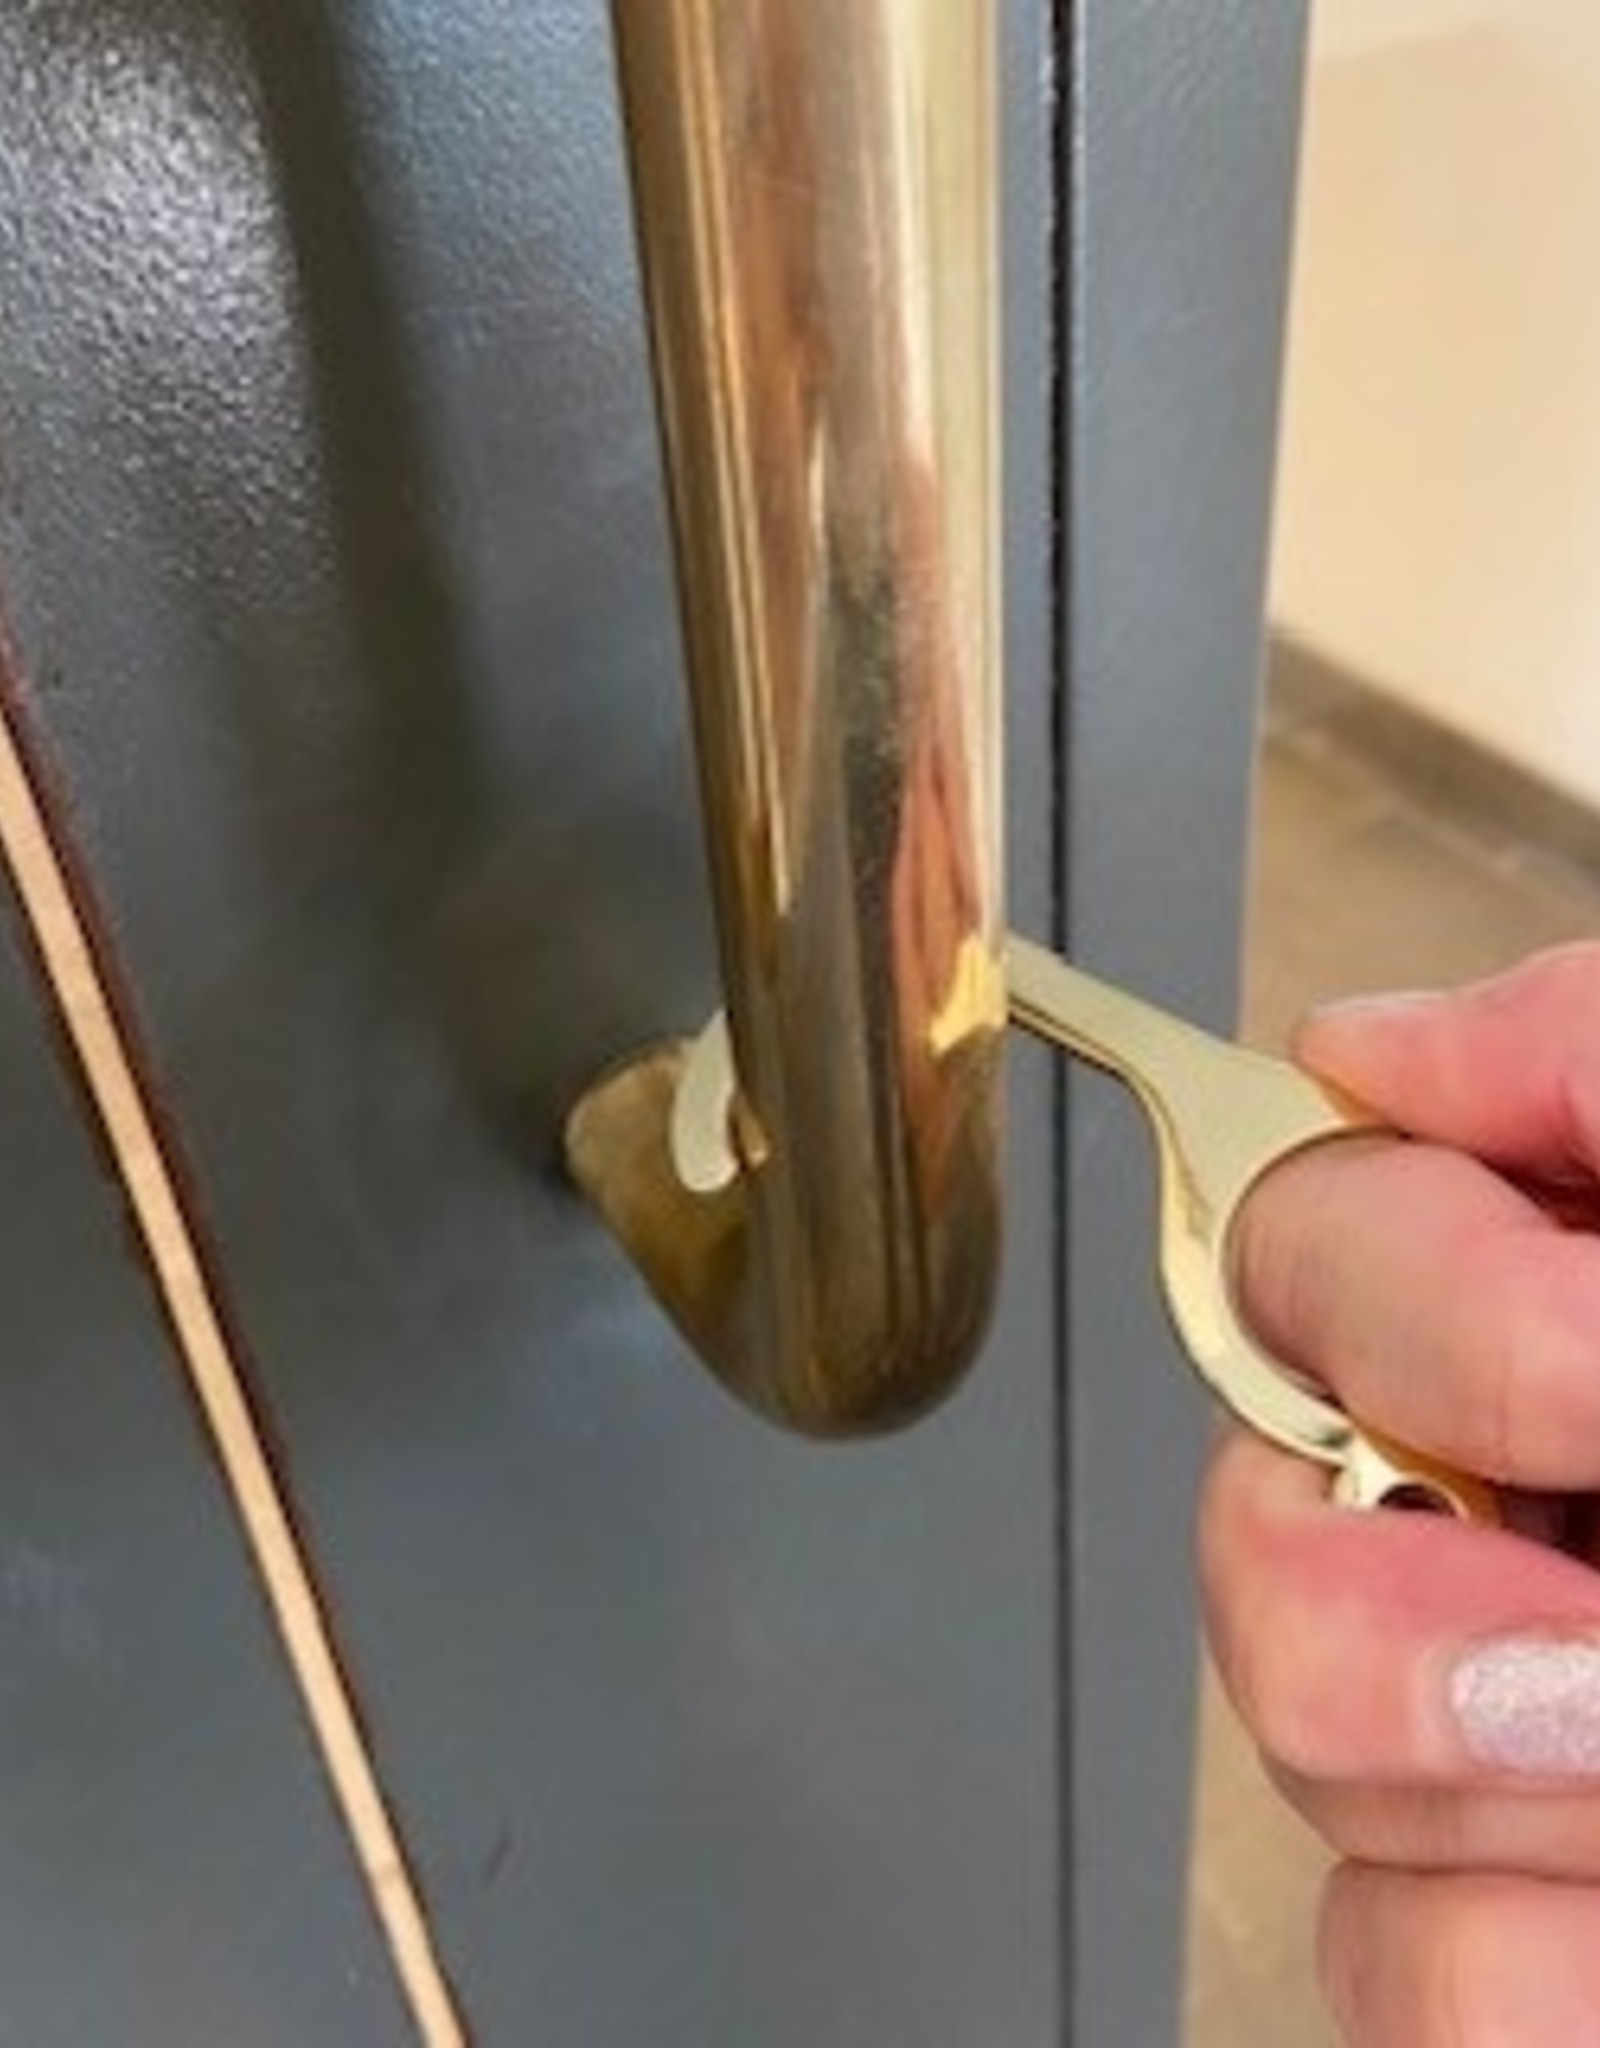 CC Touchless Door Key